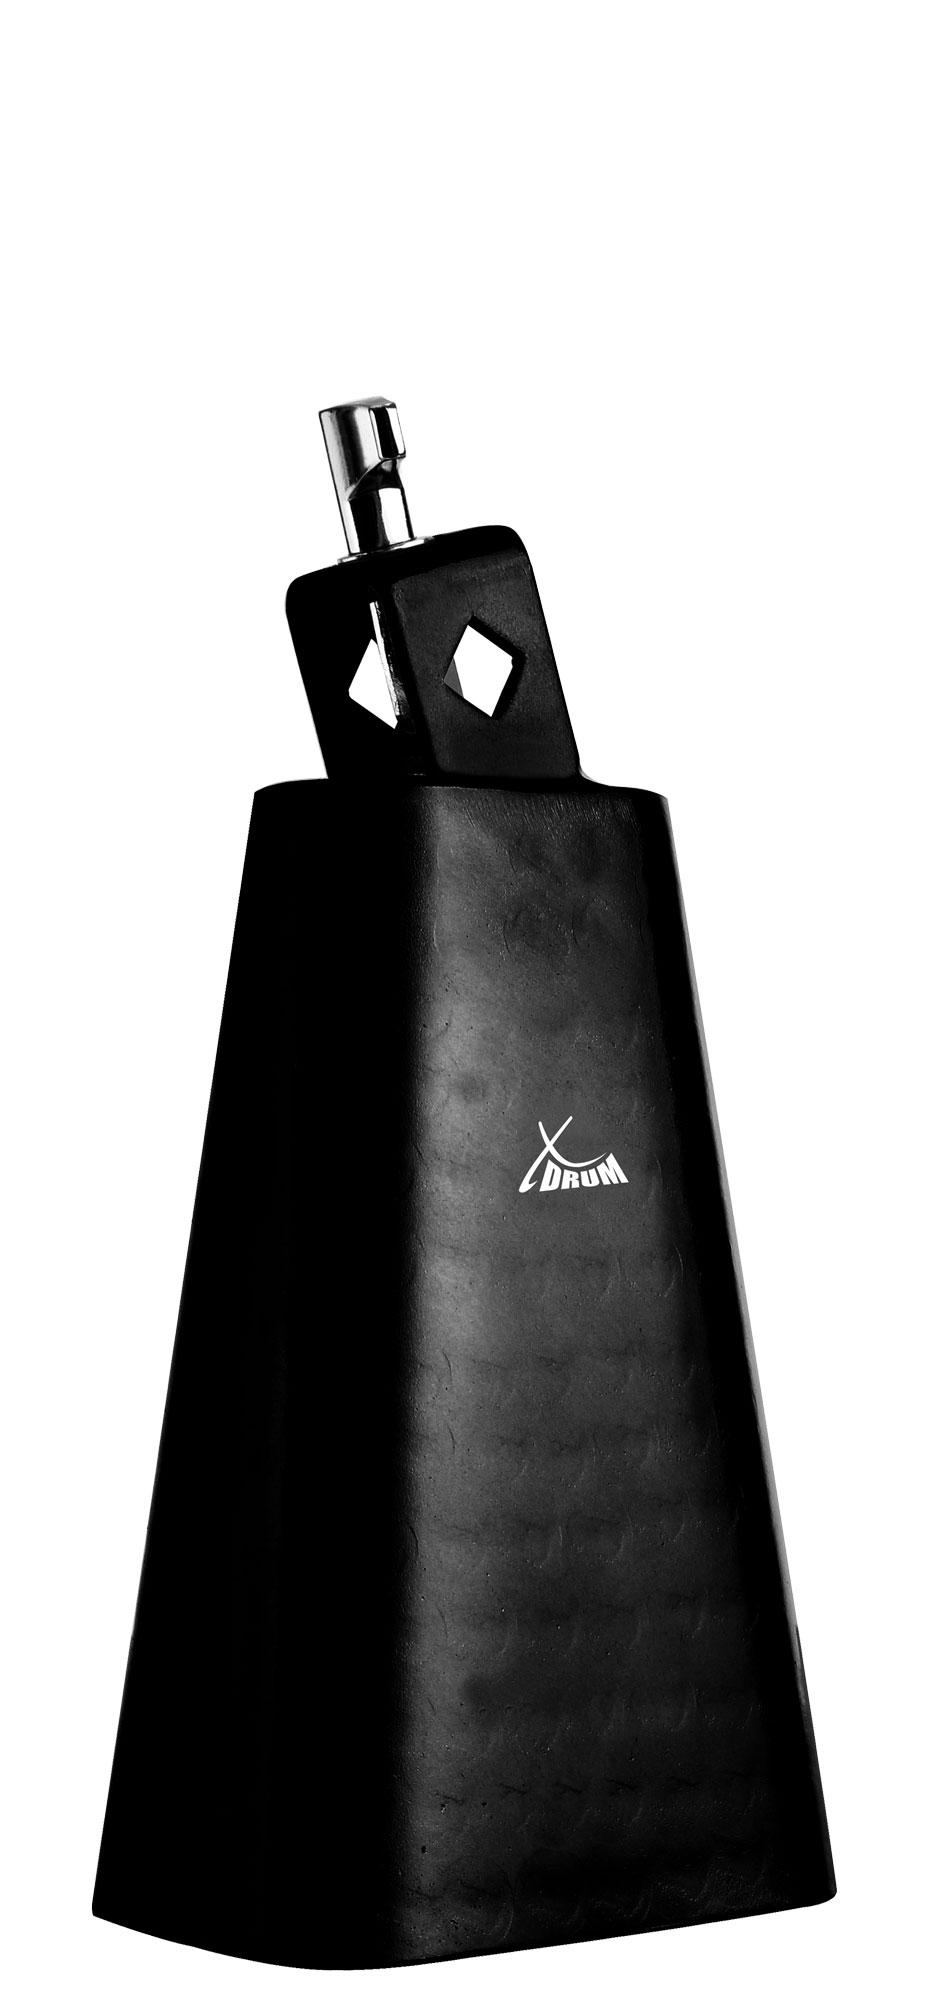 XDrum HCB 6 Cowbell